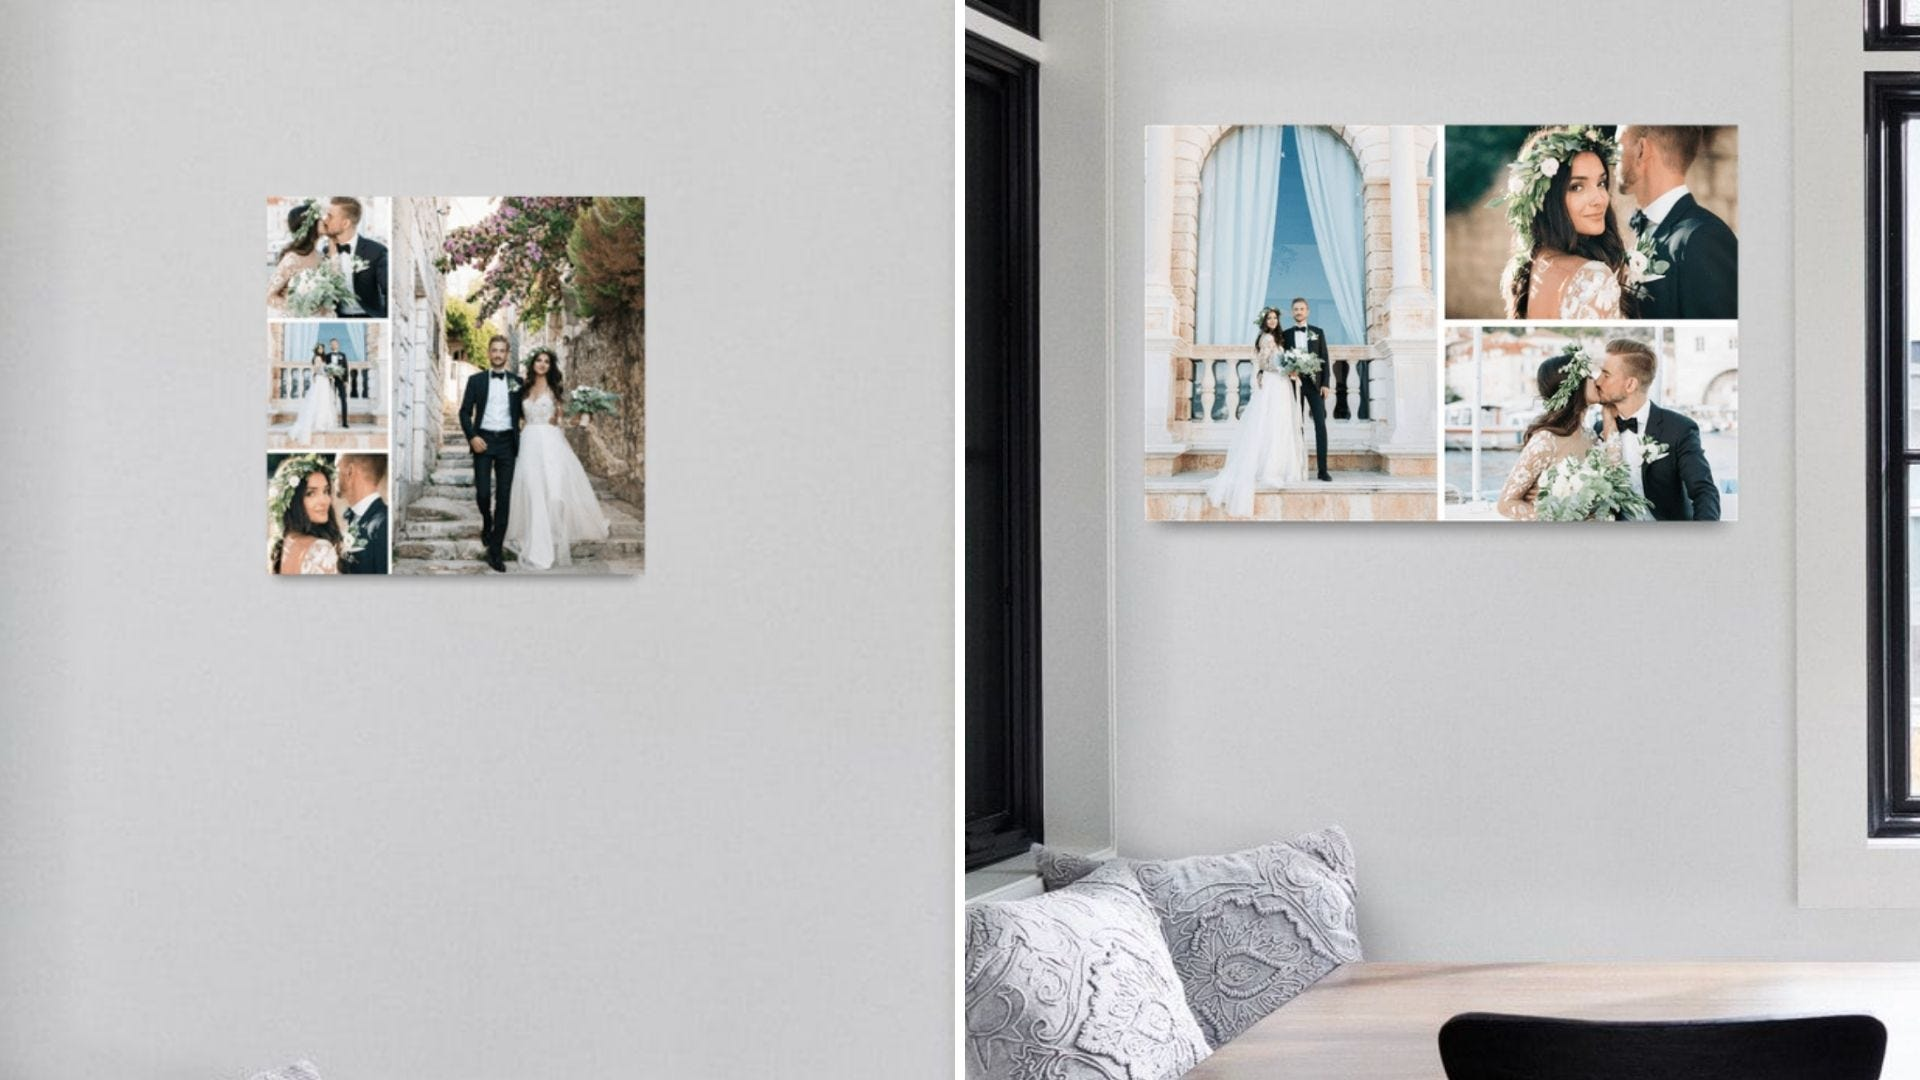 Two different photo collages on the wall